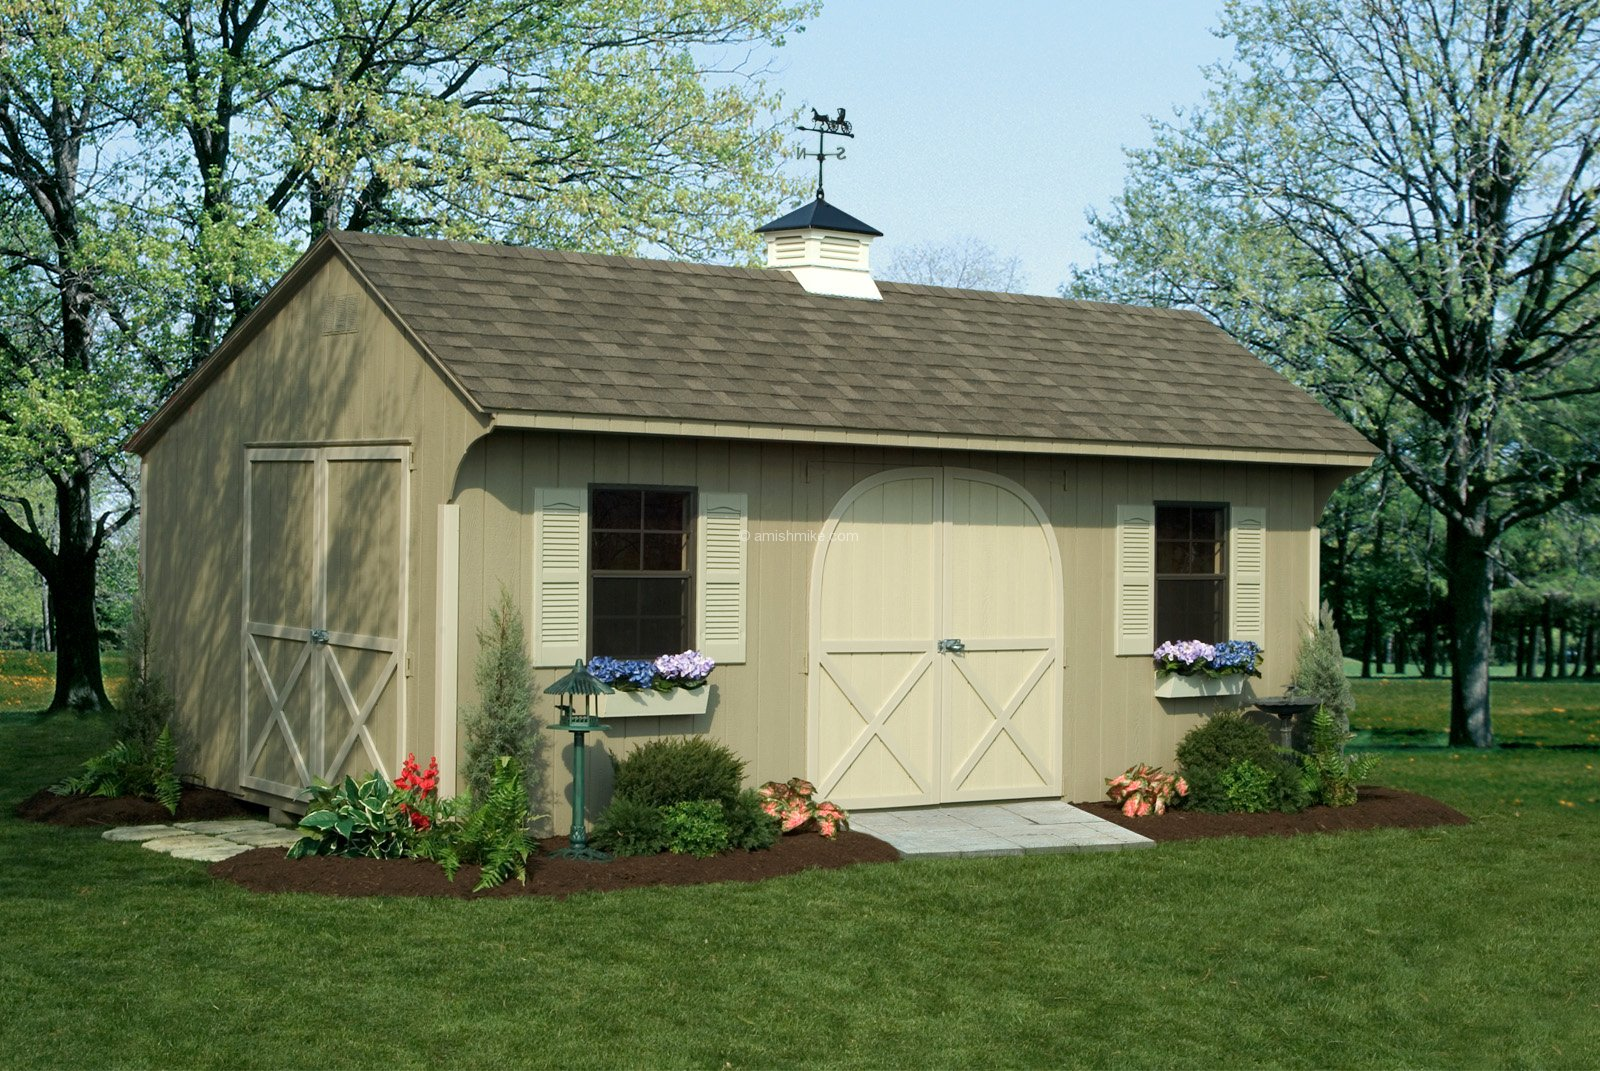 12 x 20 almond signature quaker shed - Garden Sheds Nj